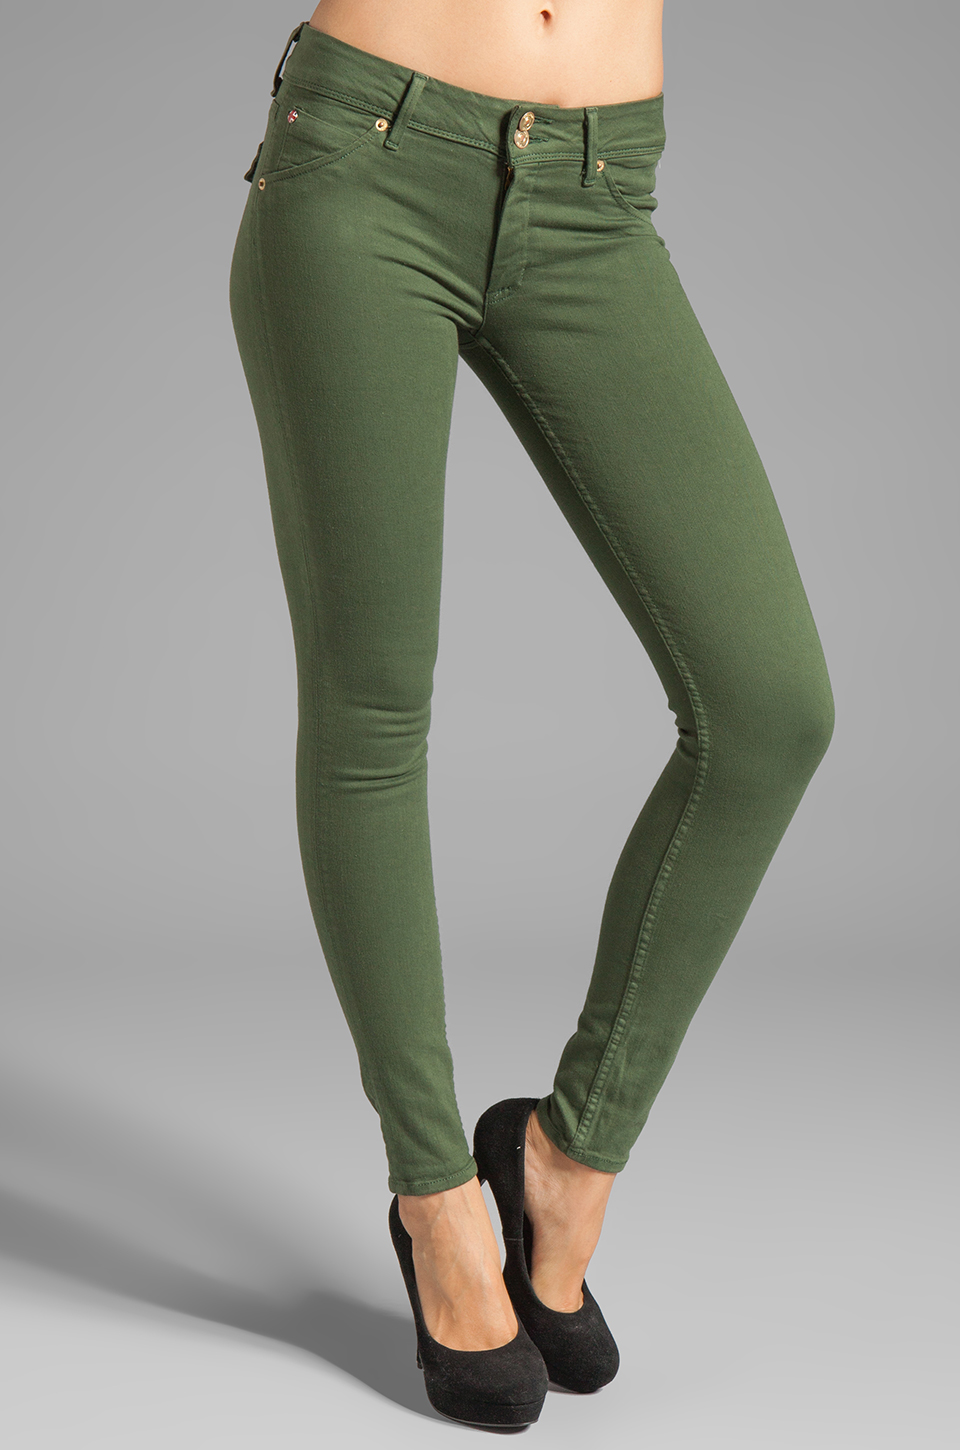 Hudson Jeans Collin Skinny in Fort Forest